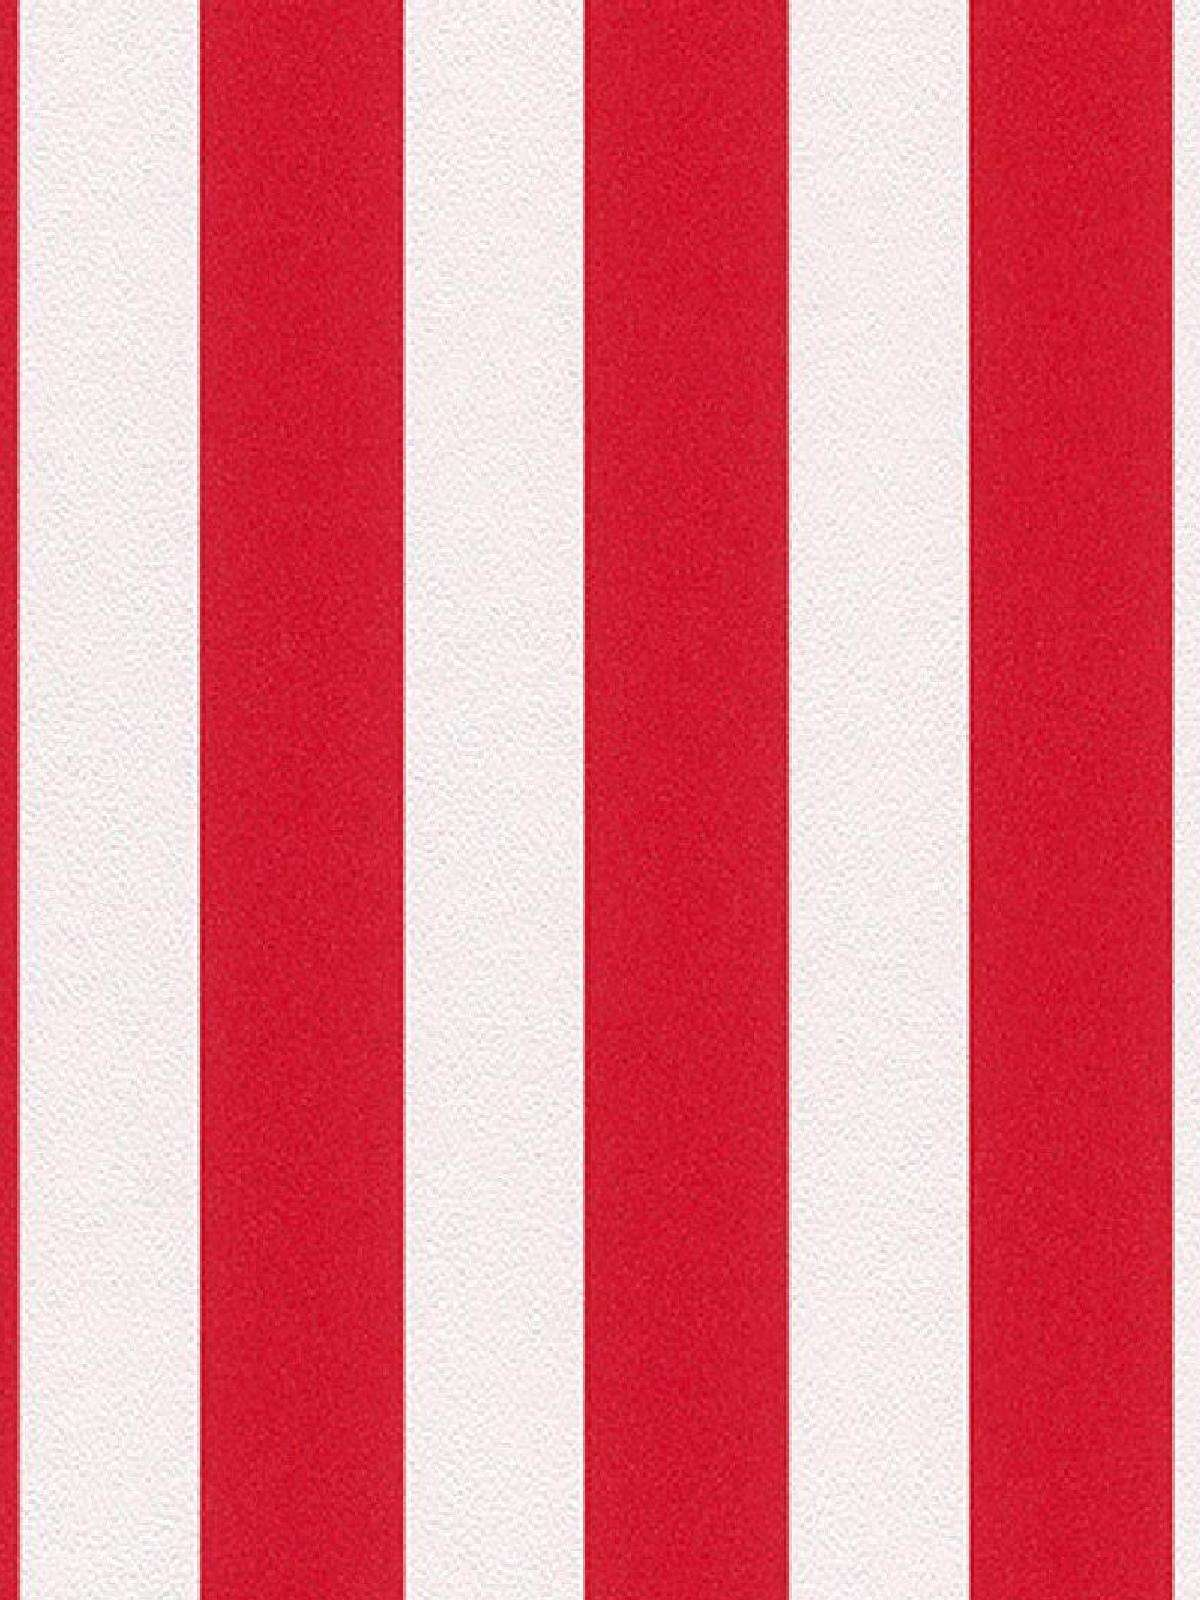 download red and white striped wallpaper gallery. Black Bedroom Furniture Sets. Home Design Ideas